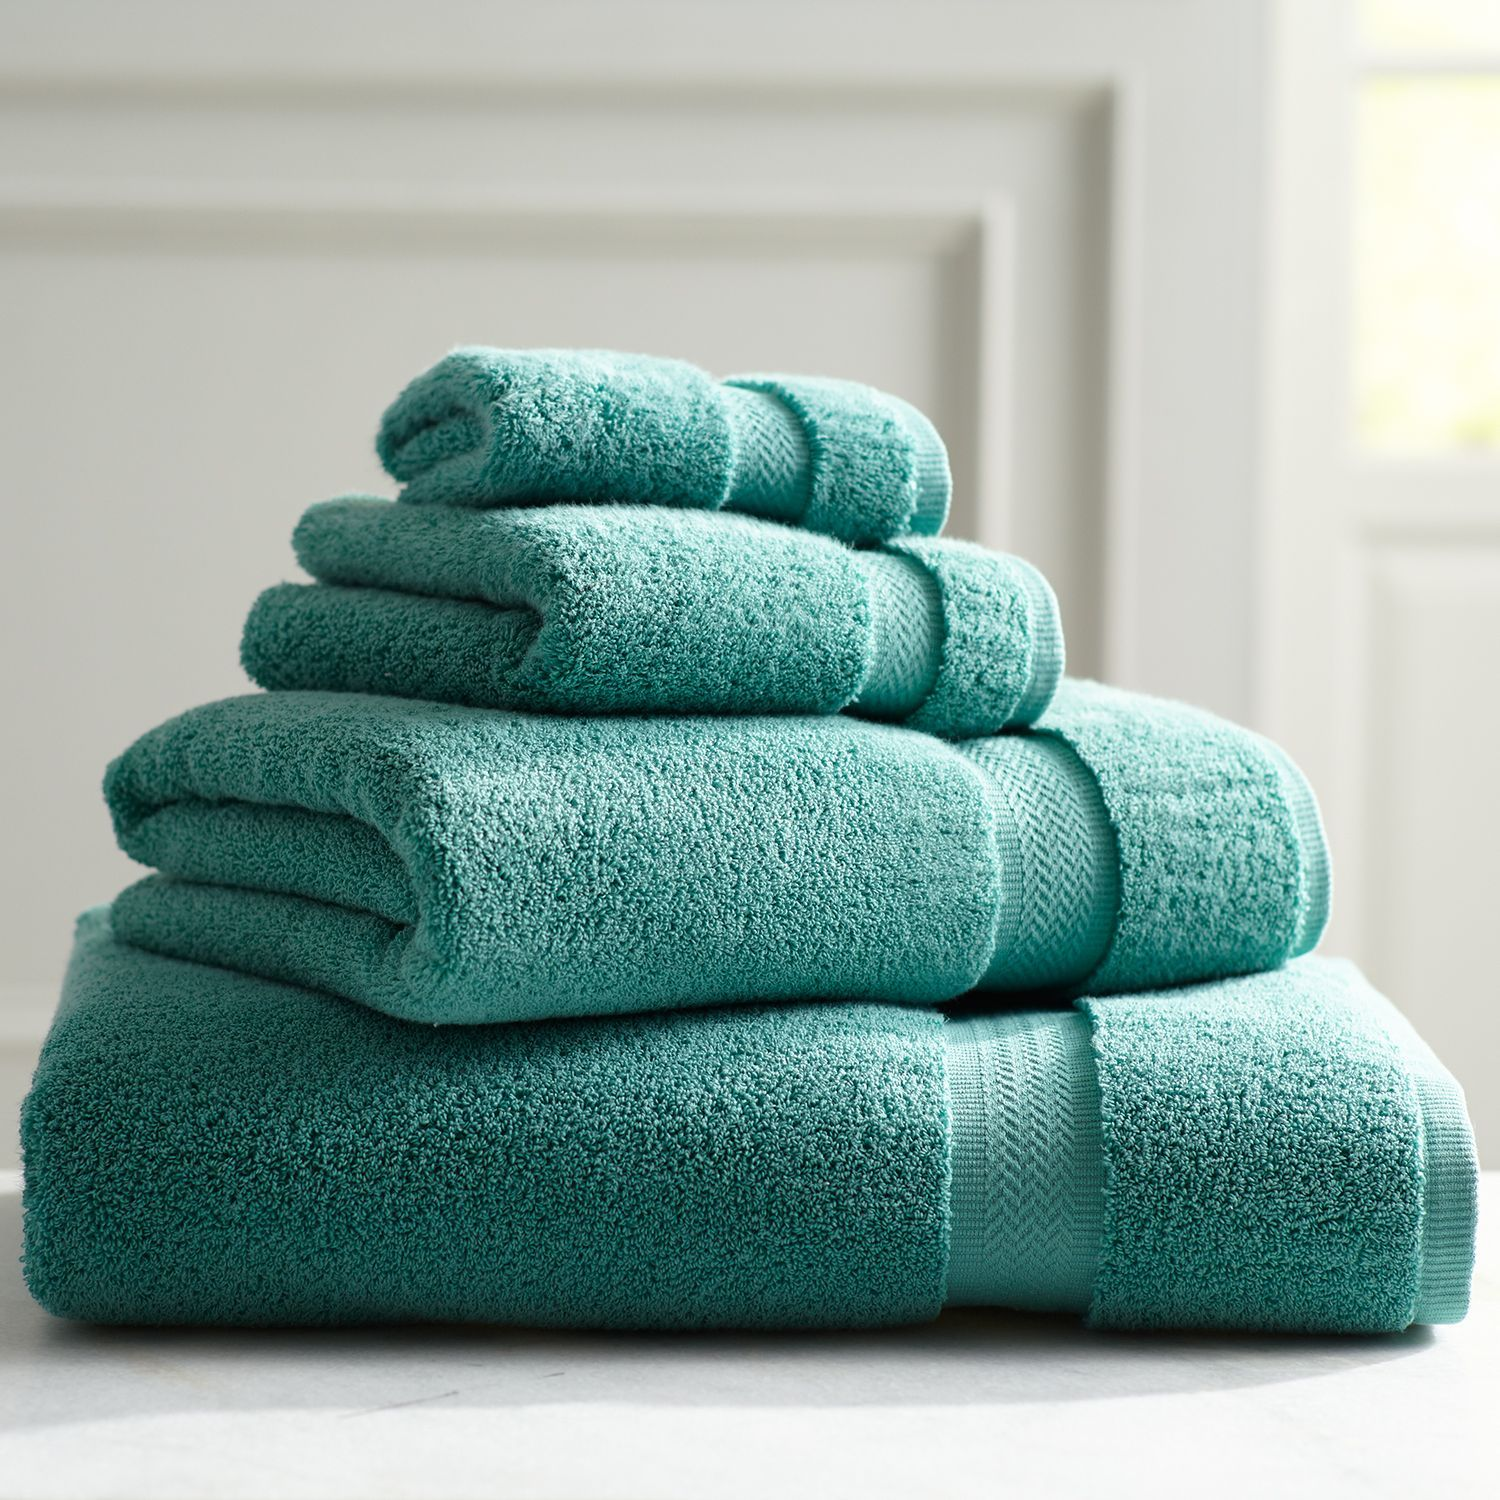 Indulgence Turquoise Washcloth Turquoise Hand And Hand Towels - Turquoise bath towels for small bathroom ideas